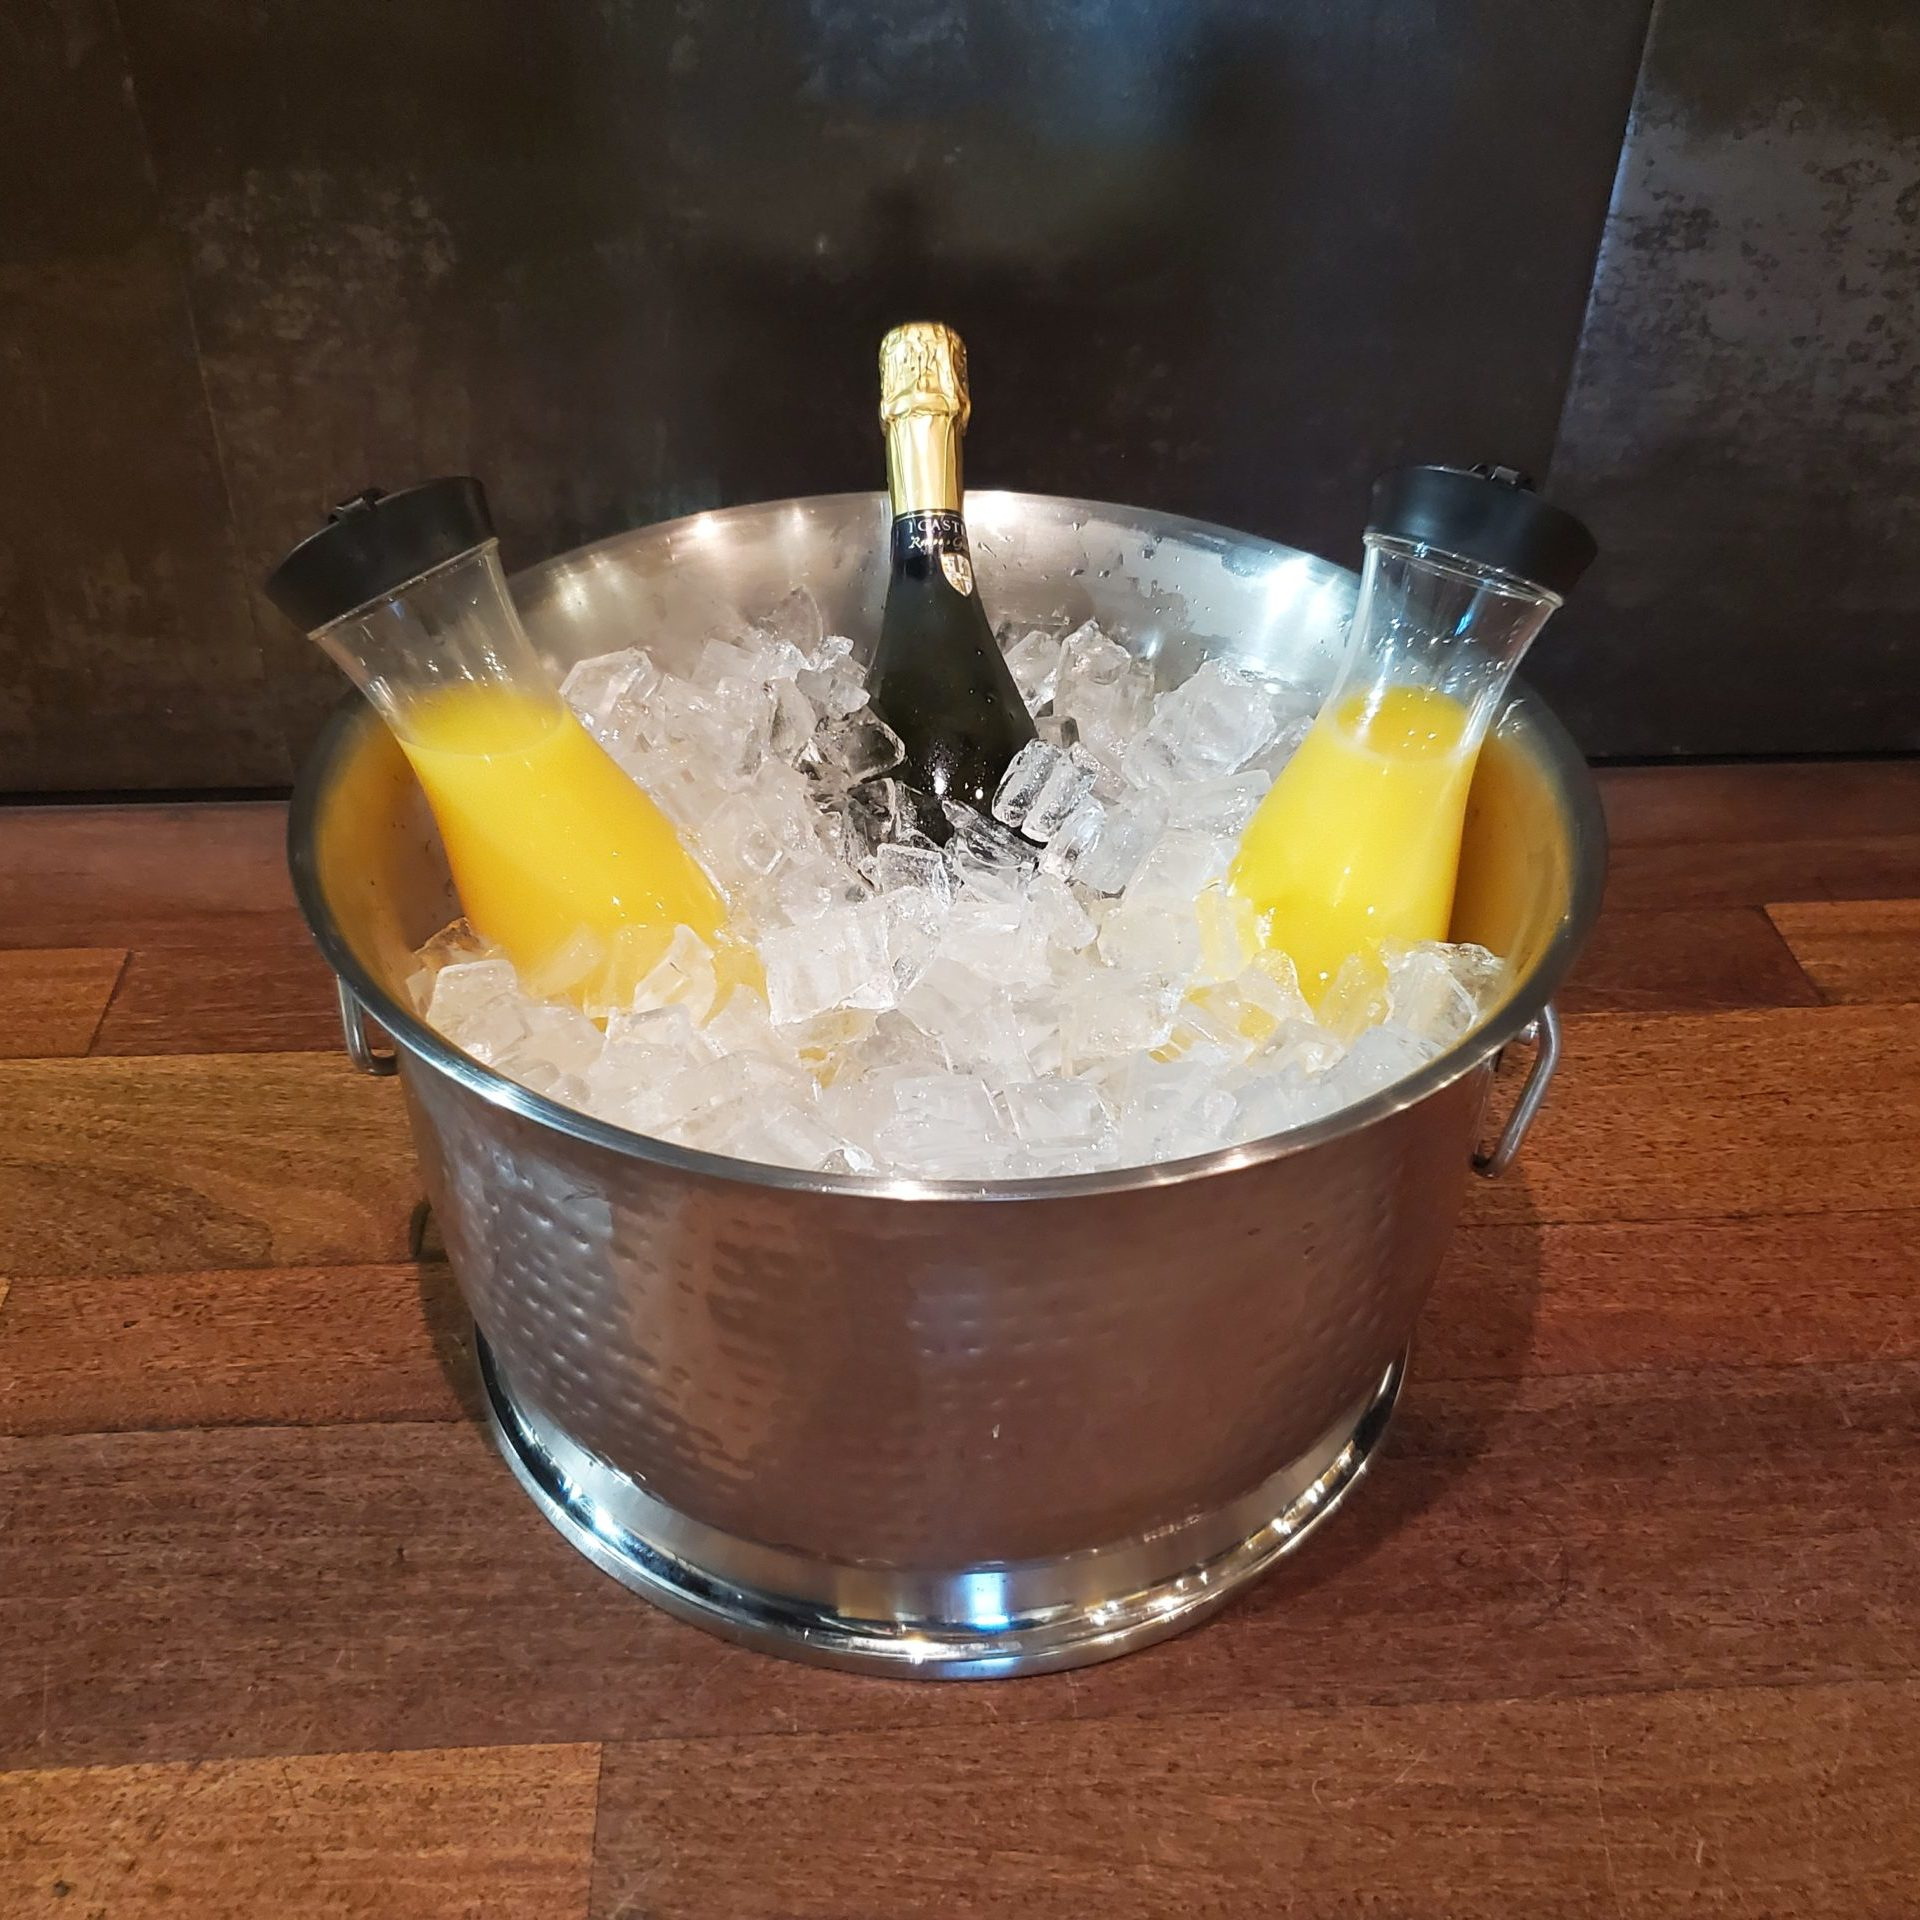 Hammered Steel Bowl filled with Sparkling Wine, Juice and Ice, offered at downtown St. Pete, Florida venue NOVA 535